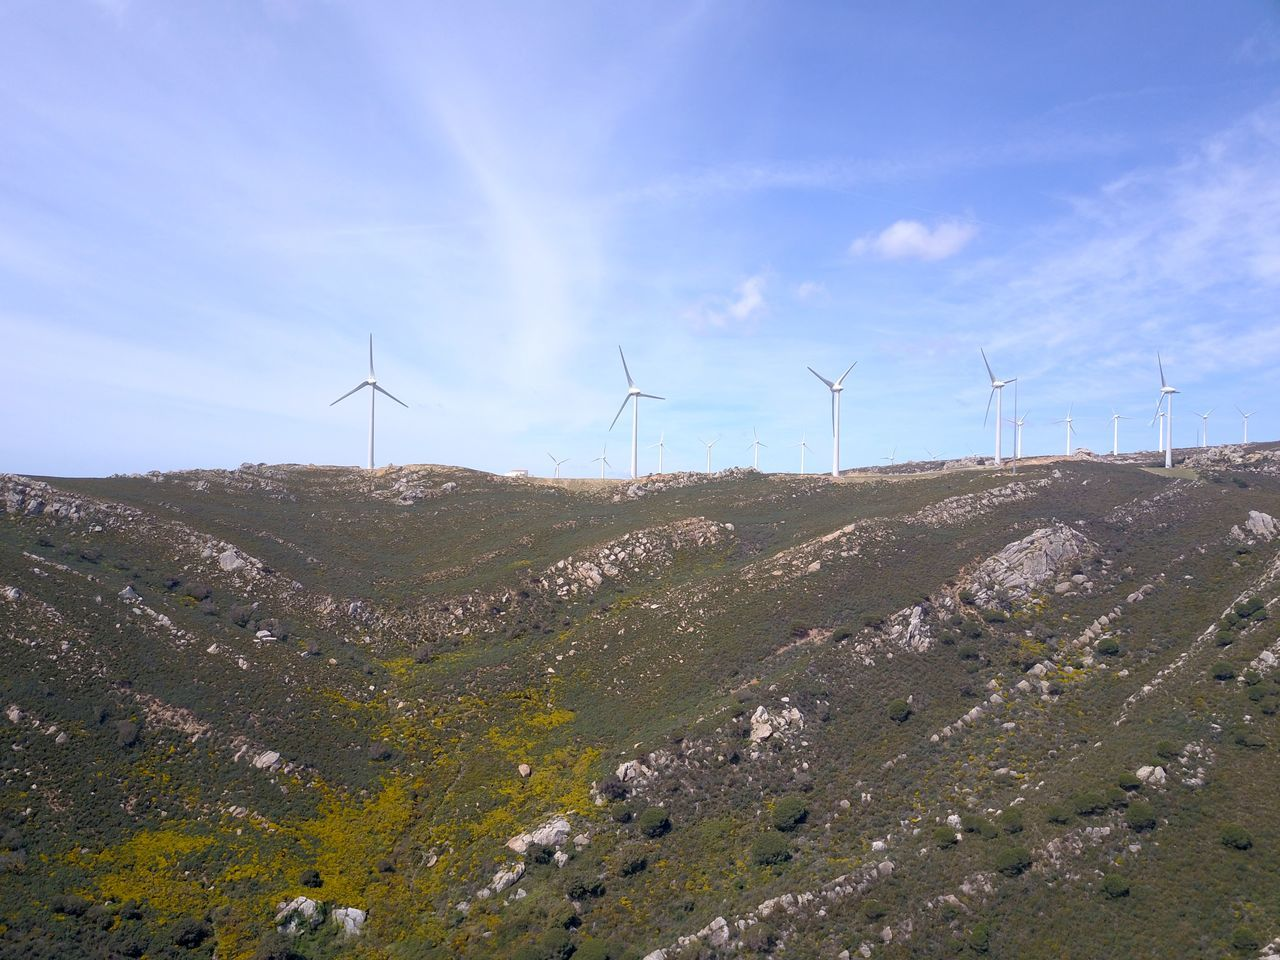 Alternative Energy Beauty In Nature Day Drone  Dronephotography Electricity  Environmental Conservation Field Landscape Nature No People Outdoors Renewable Energy Rural Scene Sky Wind Power Wind Power Wind Power Generator Wind Turbine Windmill